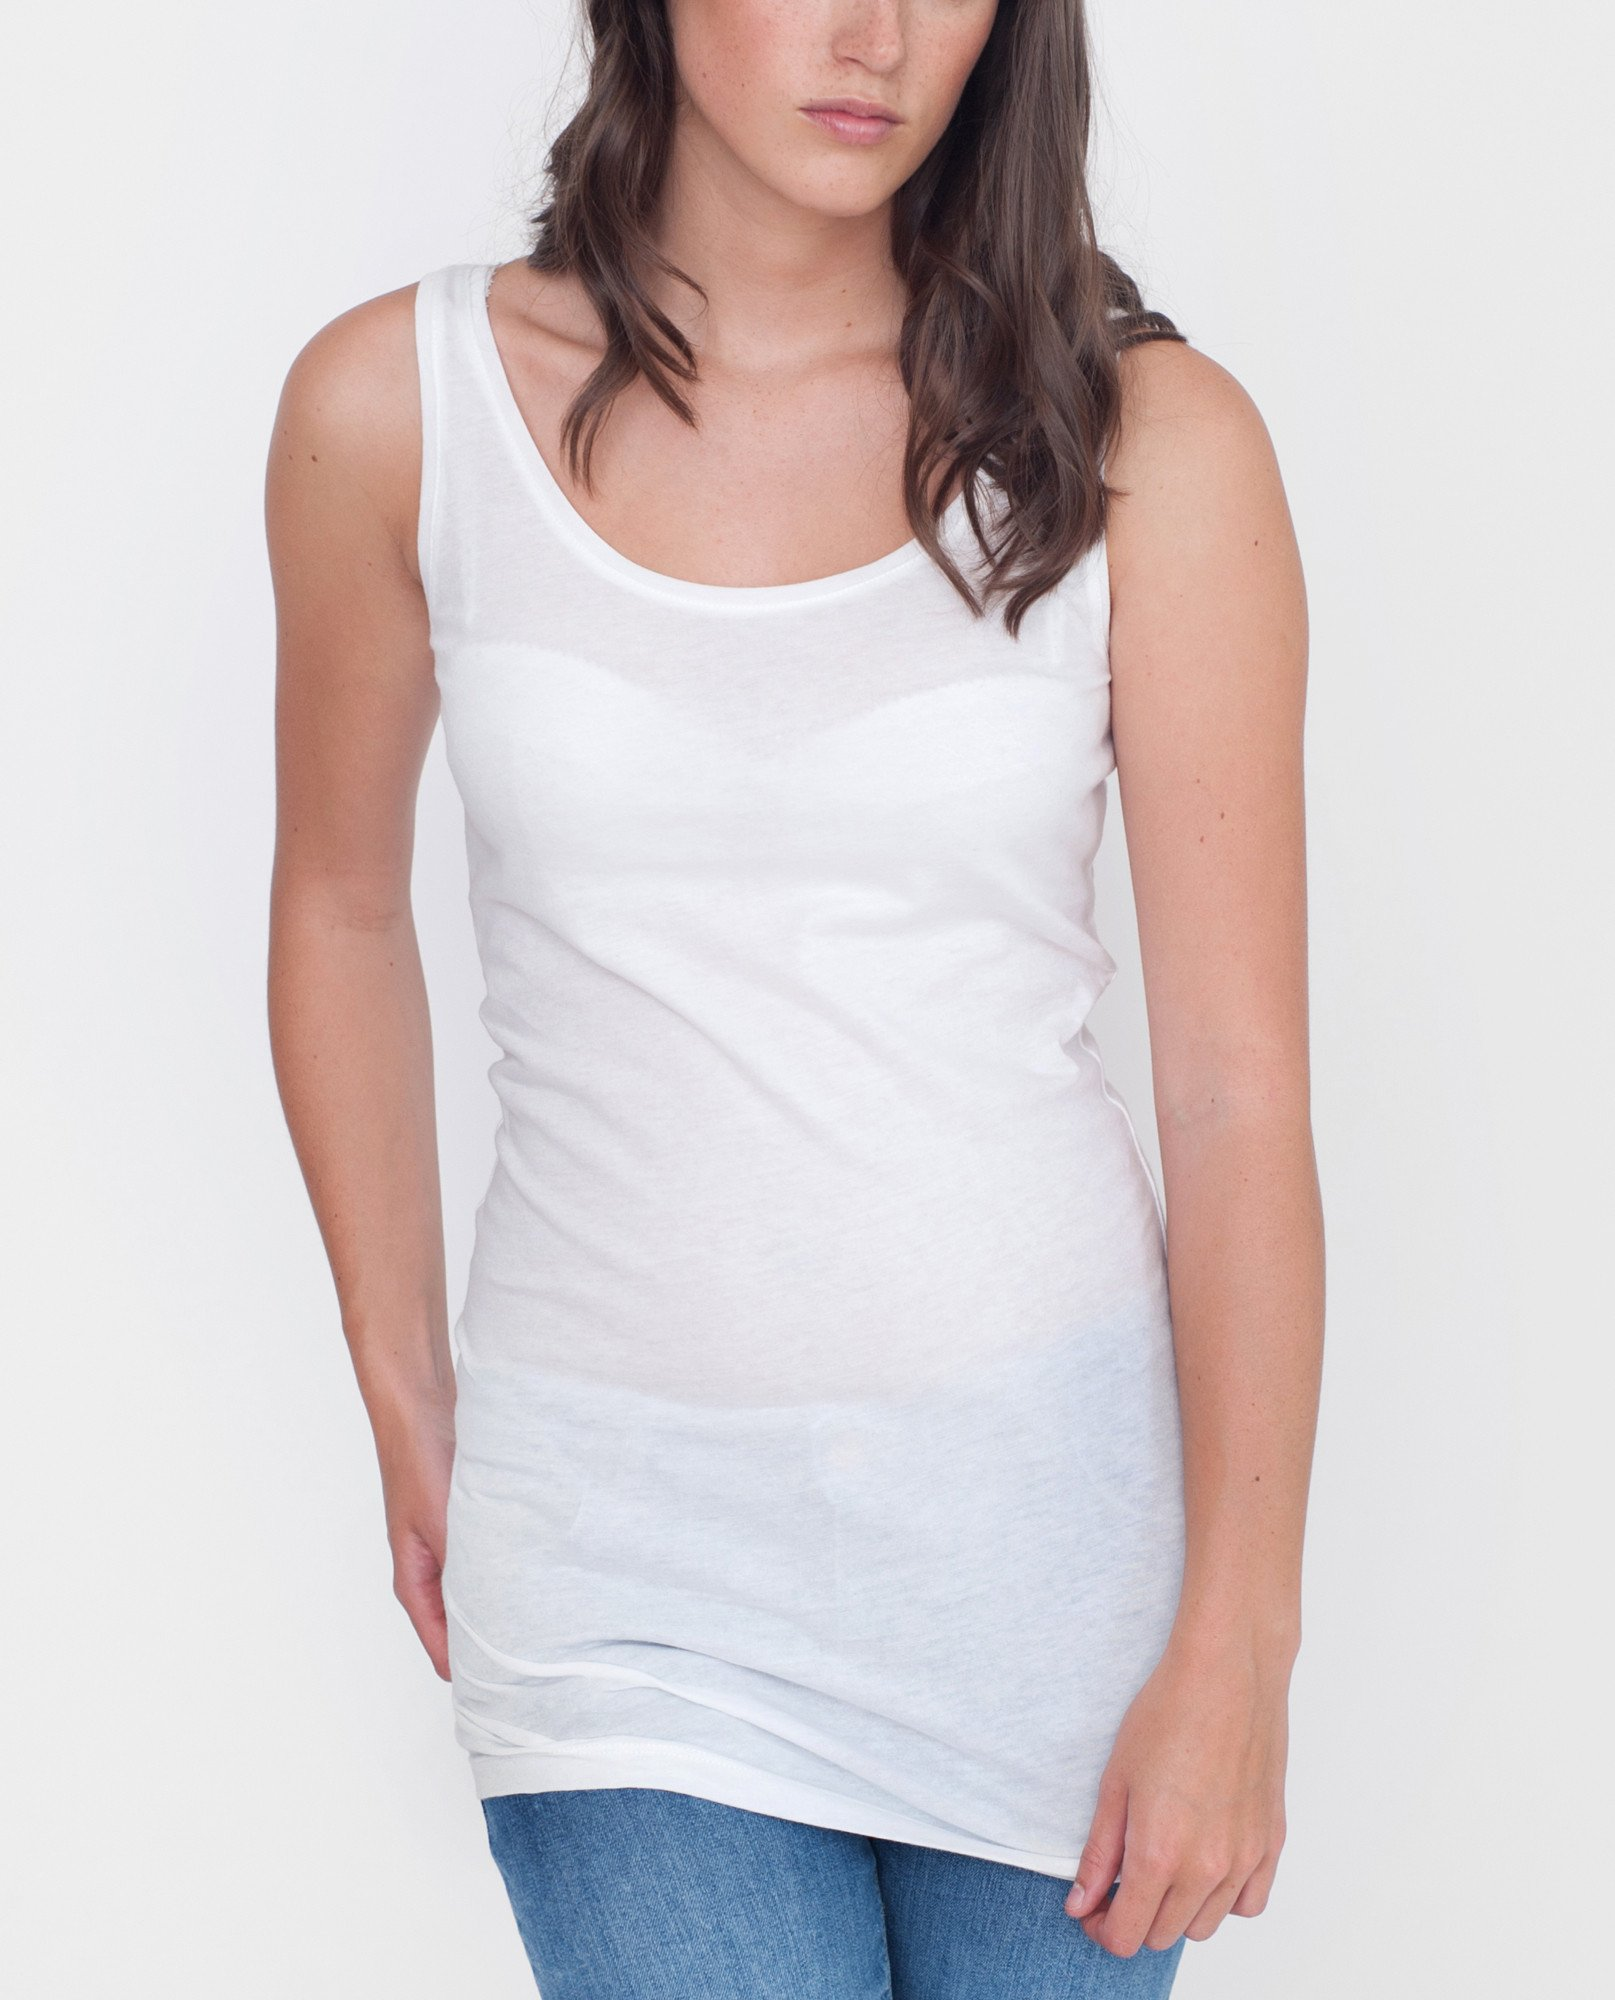 PAISLEY Organic Cotton Vest Top from Beaumont Organic